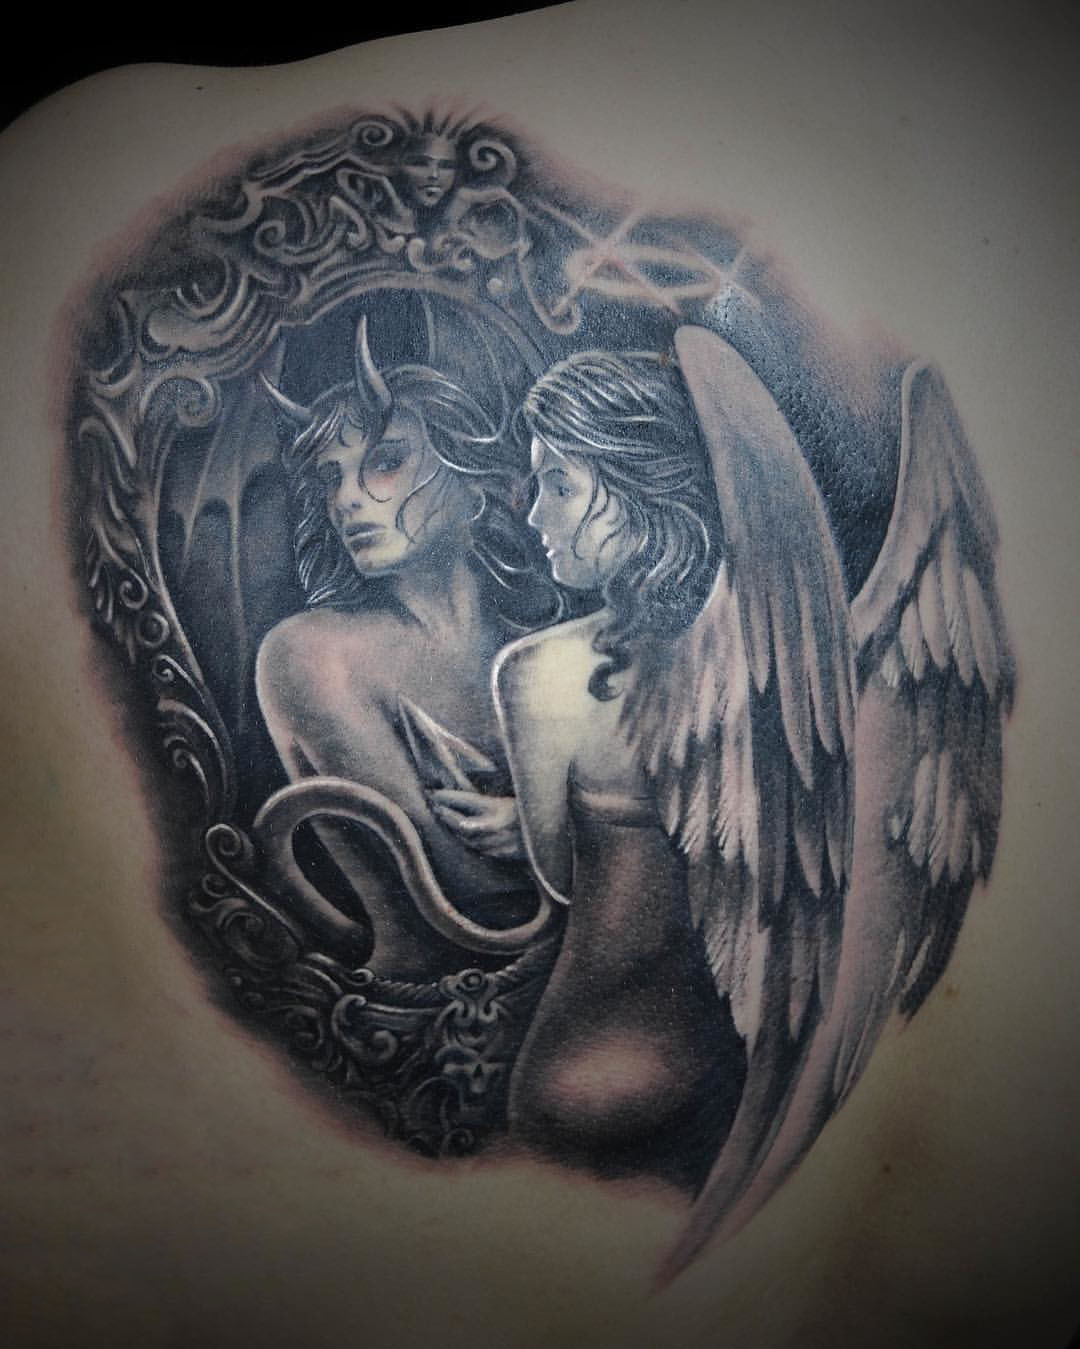 tattoo of the reflection of an angel and a demon